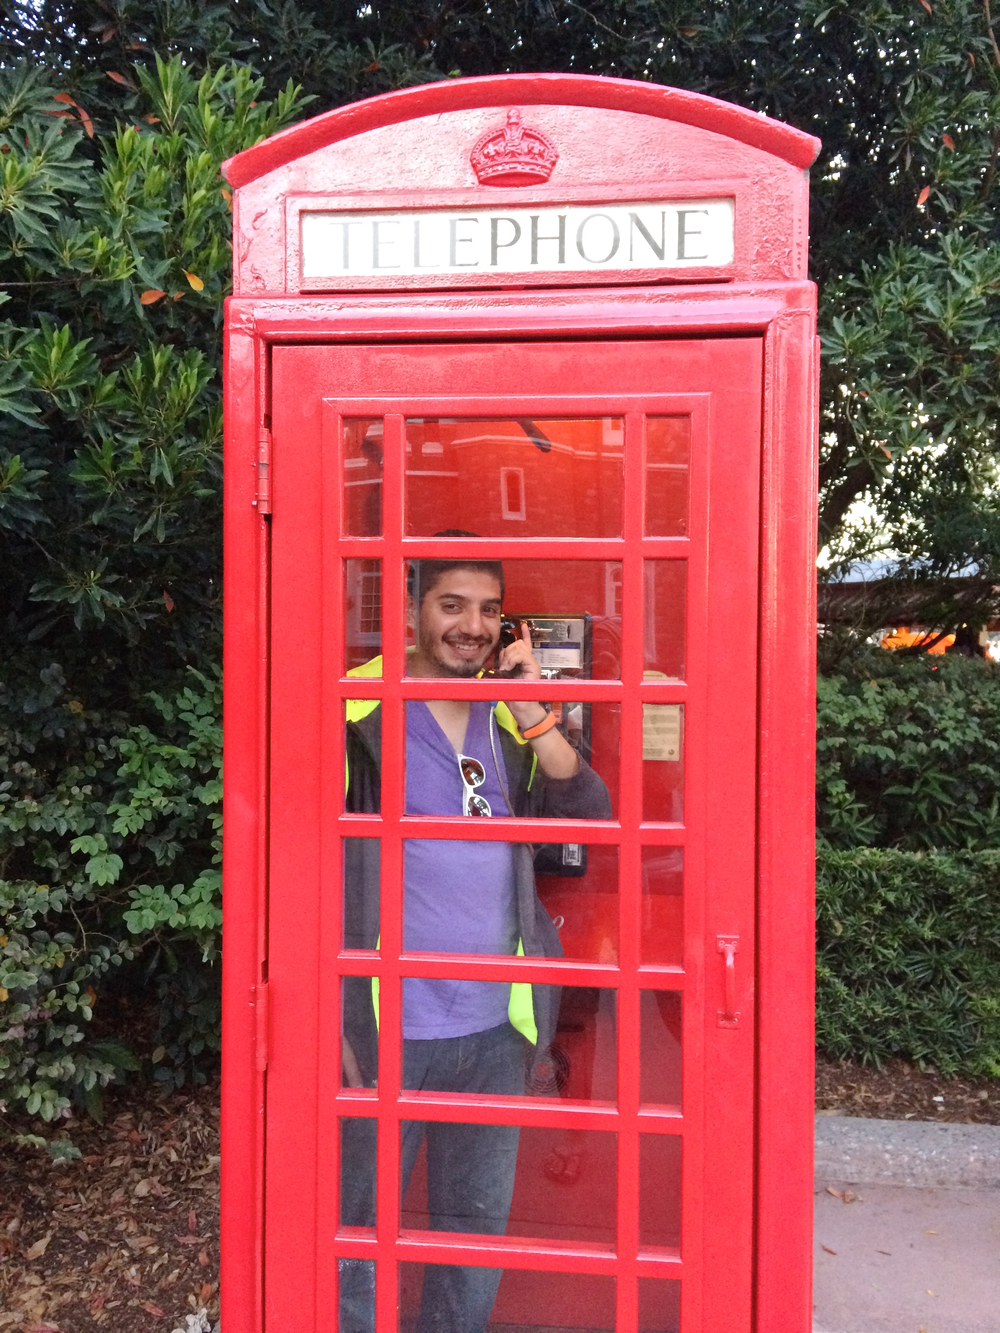 united-kingdom-epcot-phone-booth.jpg